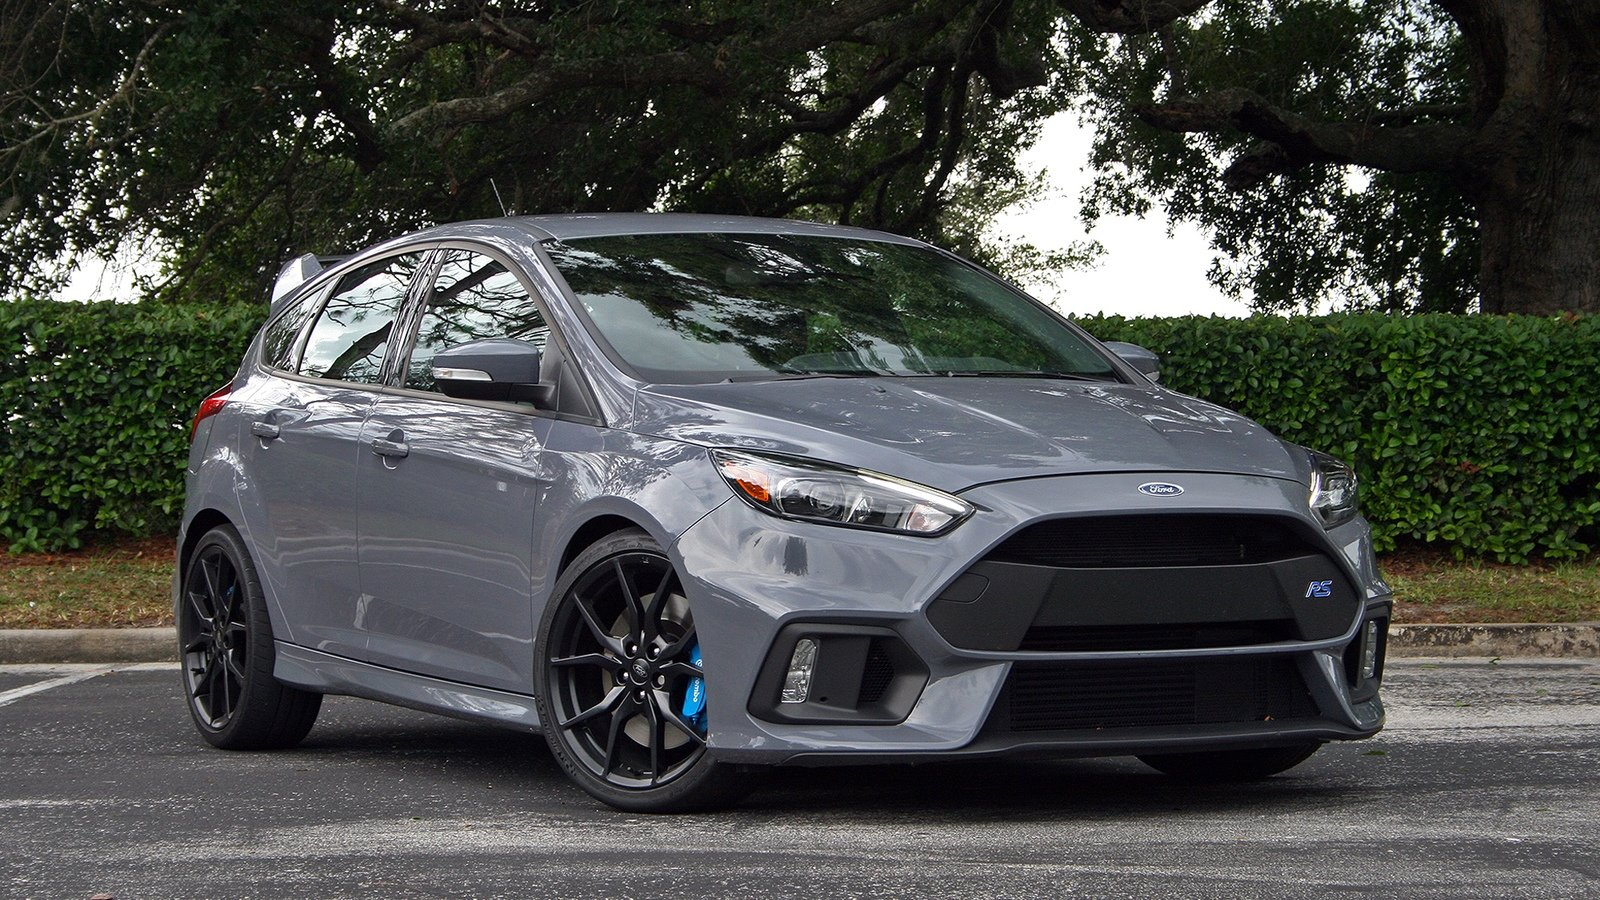 The 2017 Ford Focus Rs Rides Like A Horse Cart Amp I Love It